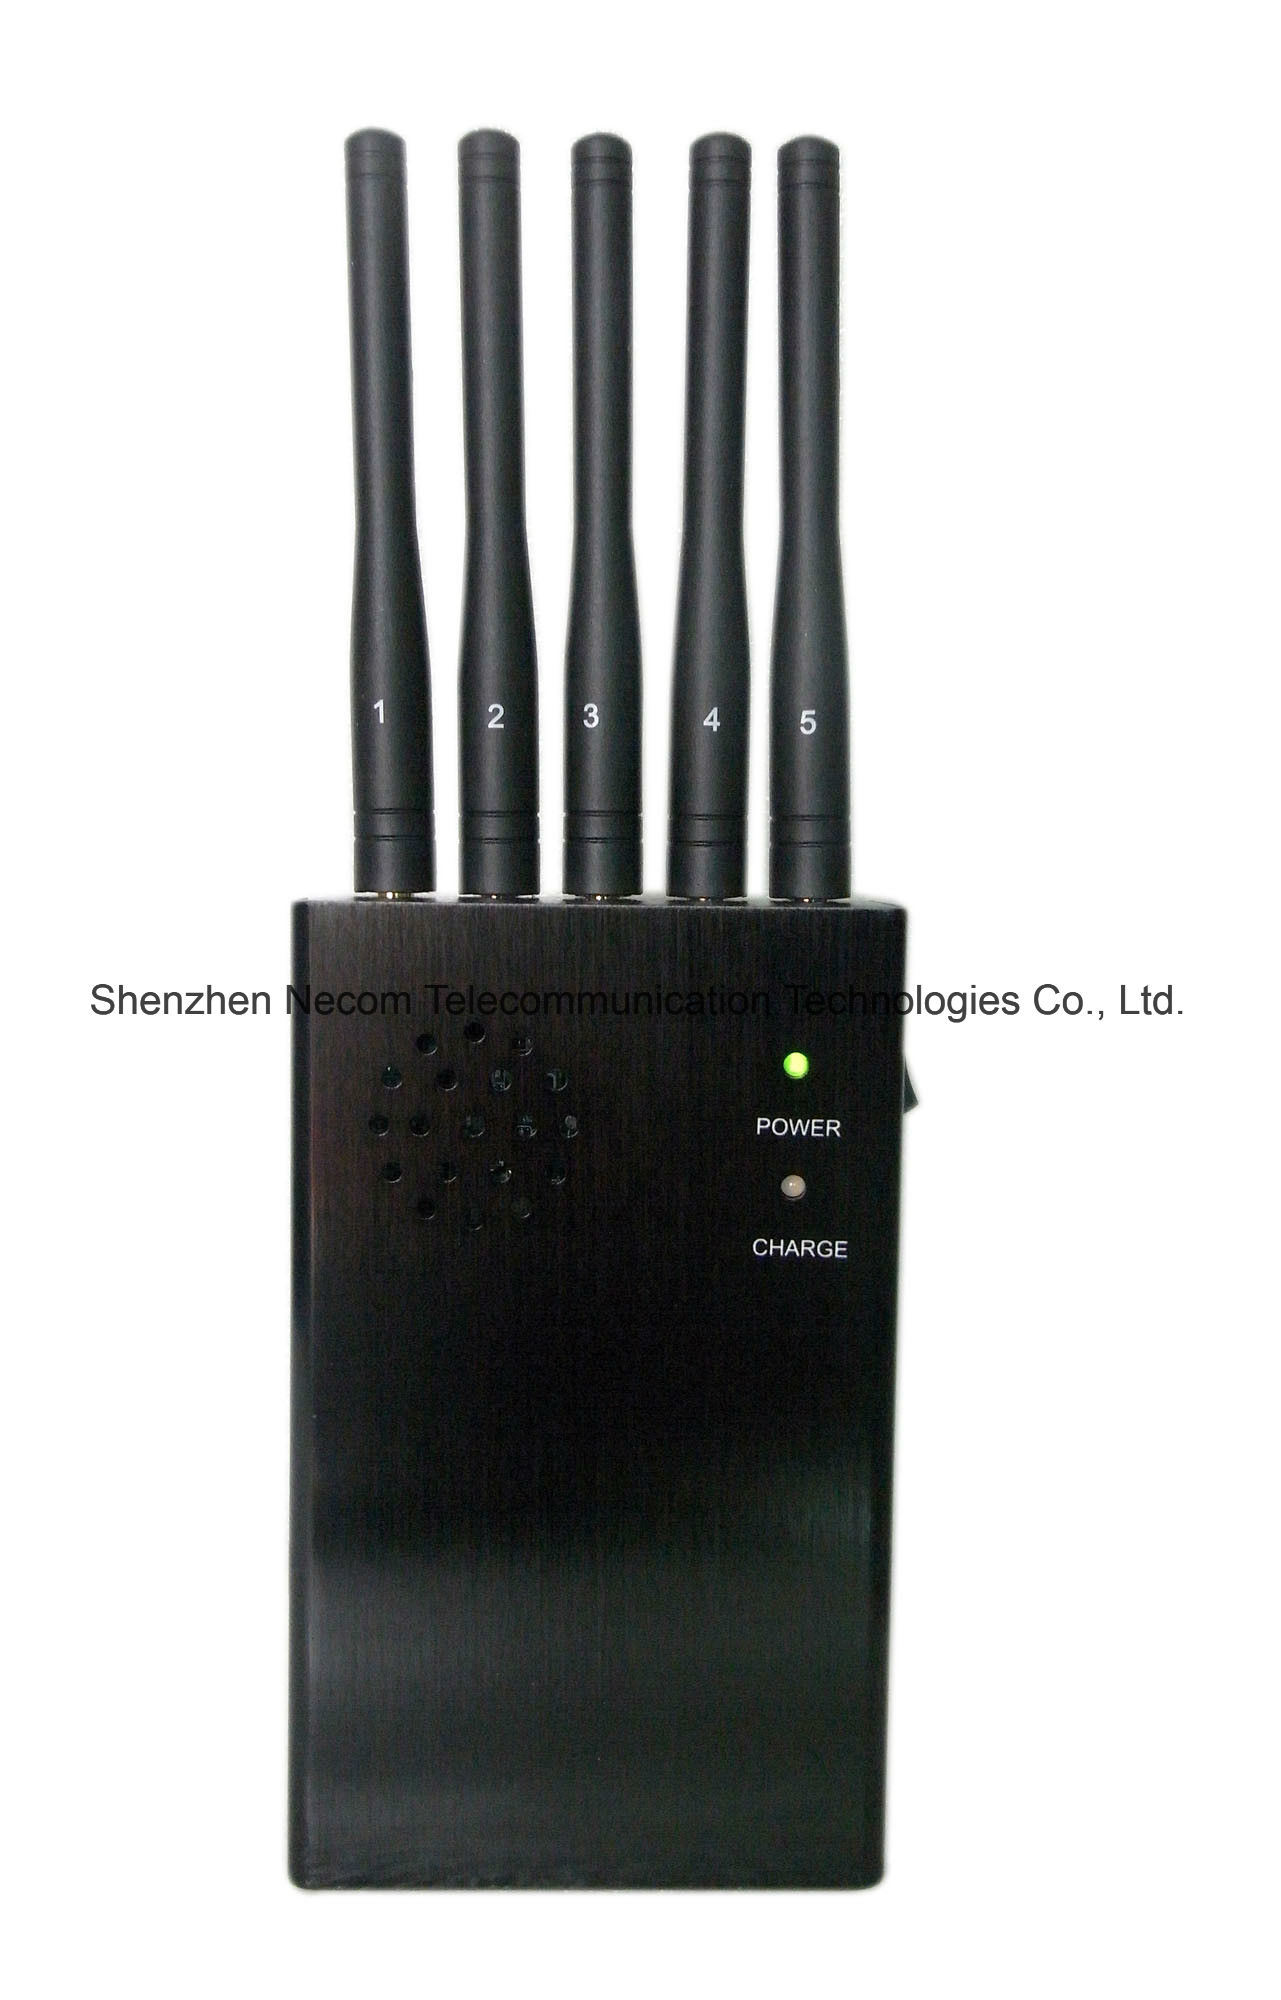 cheap phone jammer - China 5 Antenna Handheld Phone Jammer & WiFi Jammer & GPS Jammer, 5bands Handheld Jammer for Cellphone, Wi-Fi, 433, 315 Remote Control Jammer - China 5 Band Signal Blockers, Five Antennas Jammers